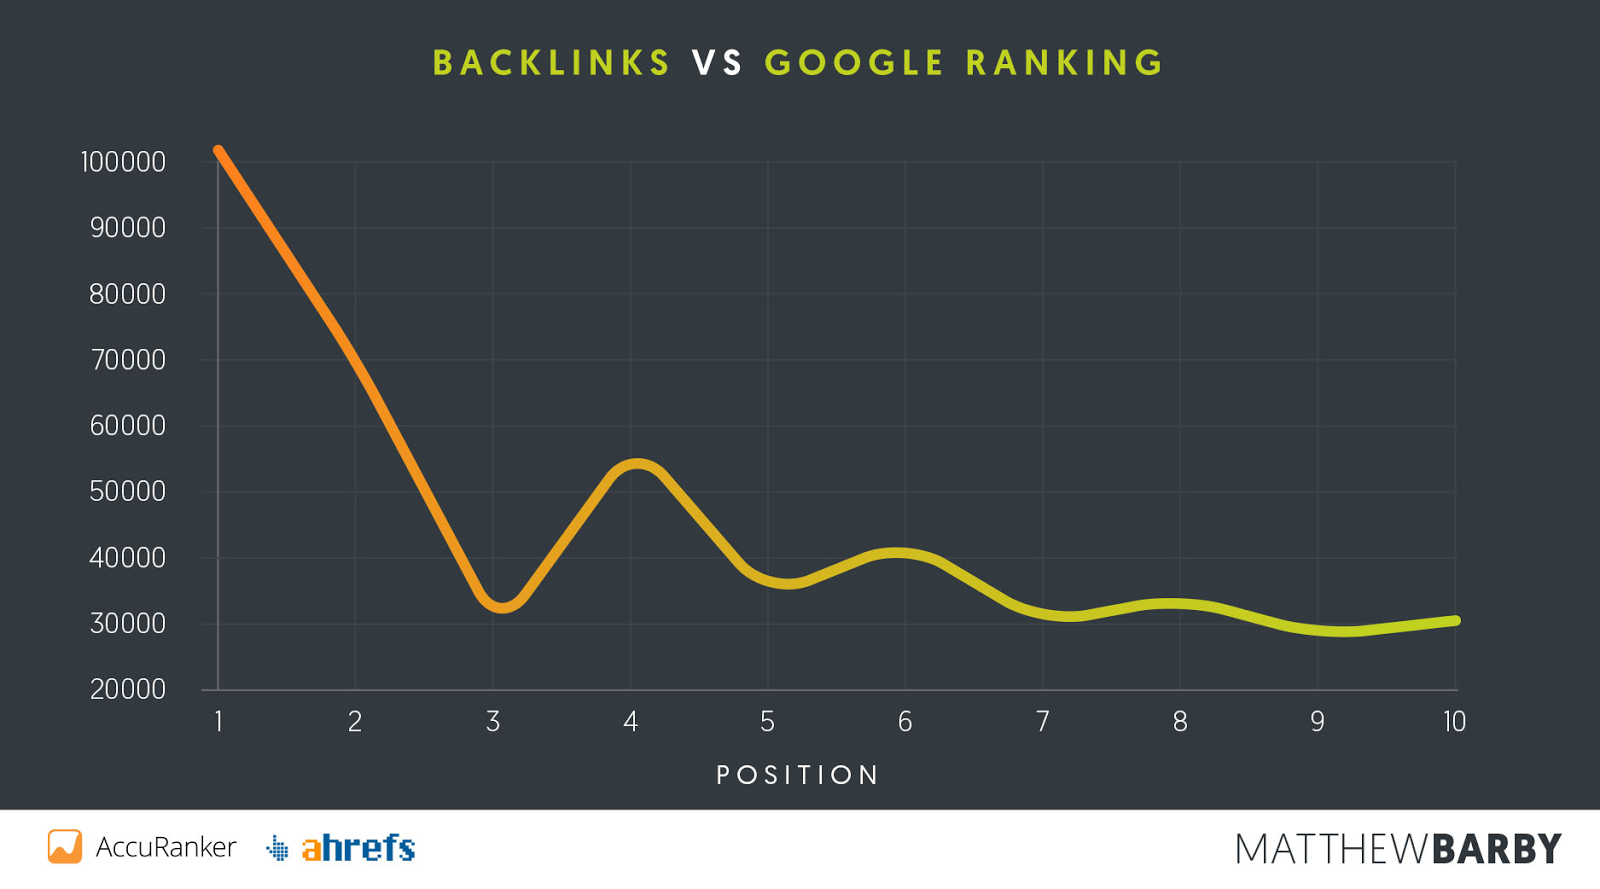 Backlinks are an extremely important part of search engine optimization.